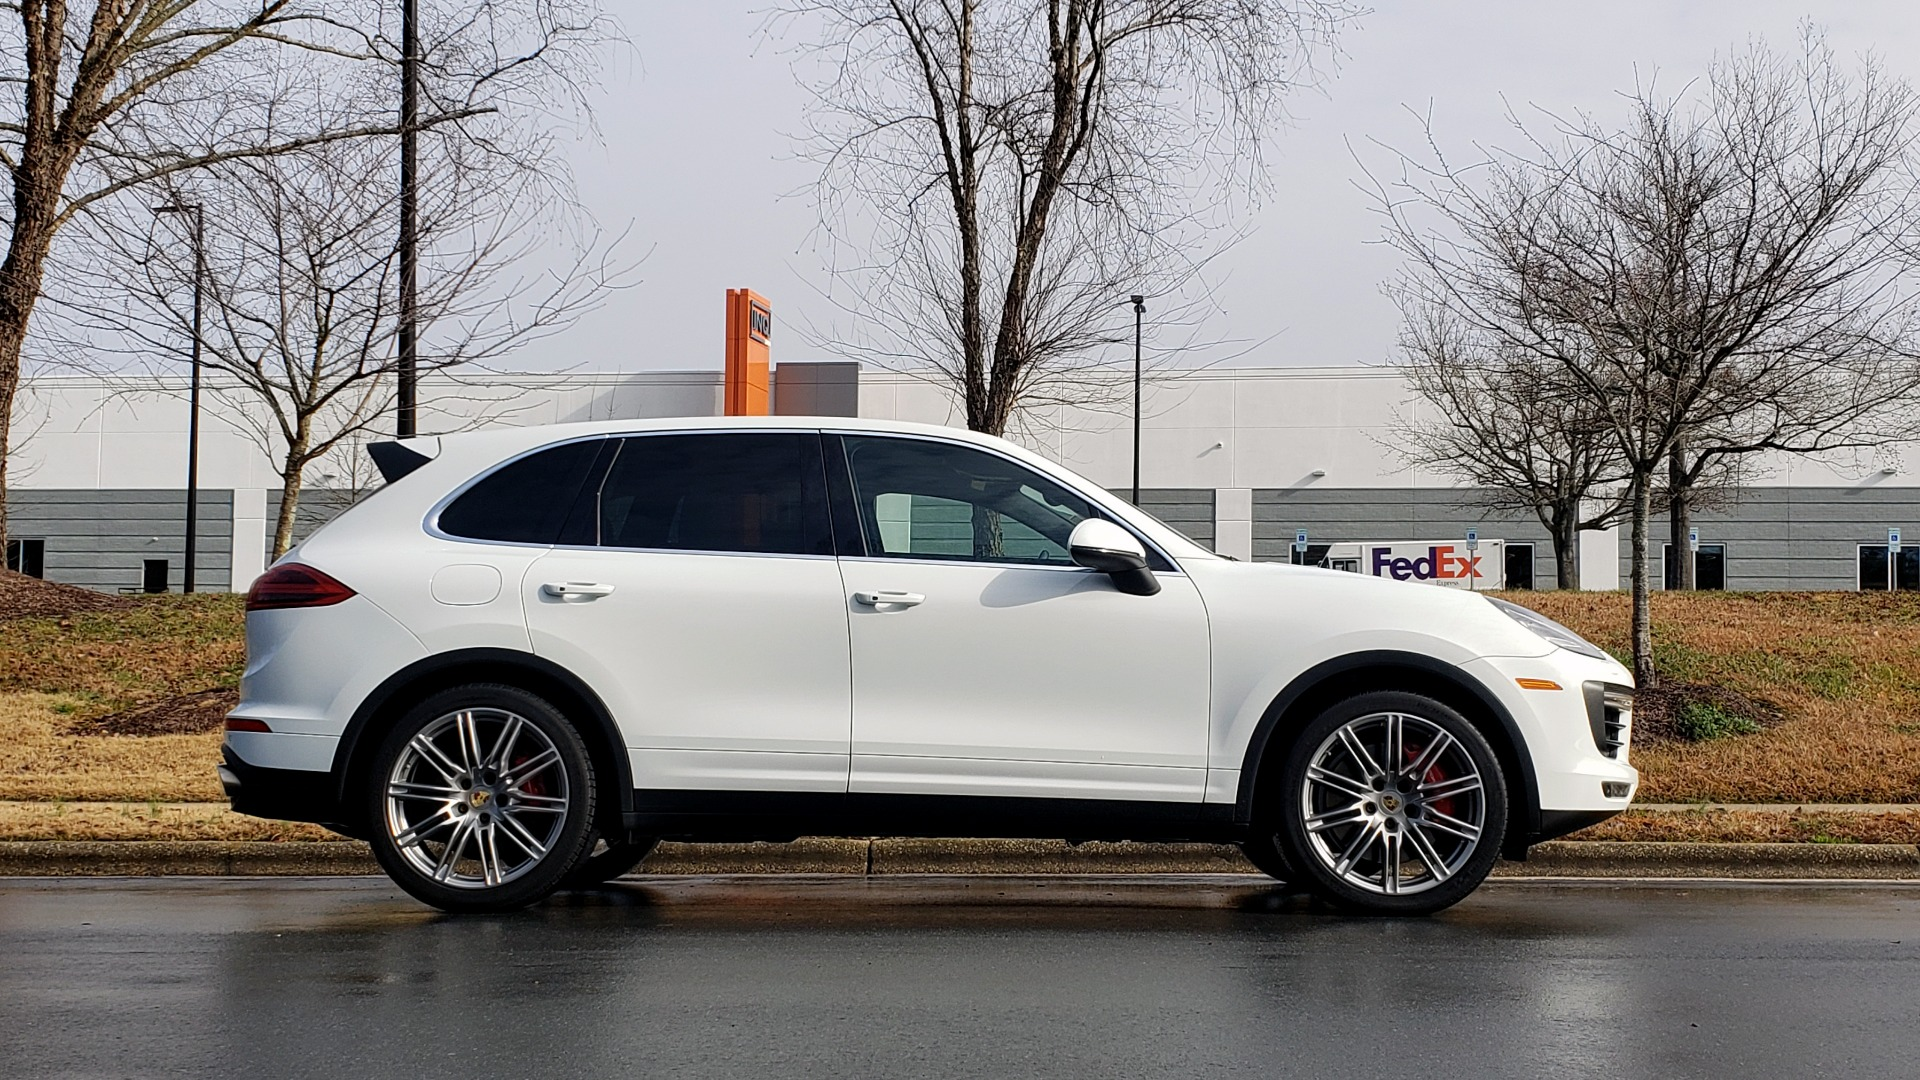 Used 2015 Porsche CAYENNE TURBO V8 / PREMIUM / NAV / SUNROOF / PARK ASSIST / LCA / REARVIEW for sale $47,995 at Formula Imports in Charlotte NC 28227 8